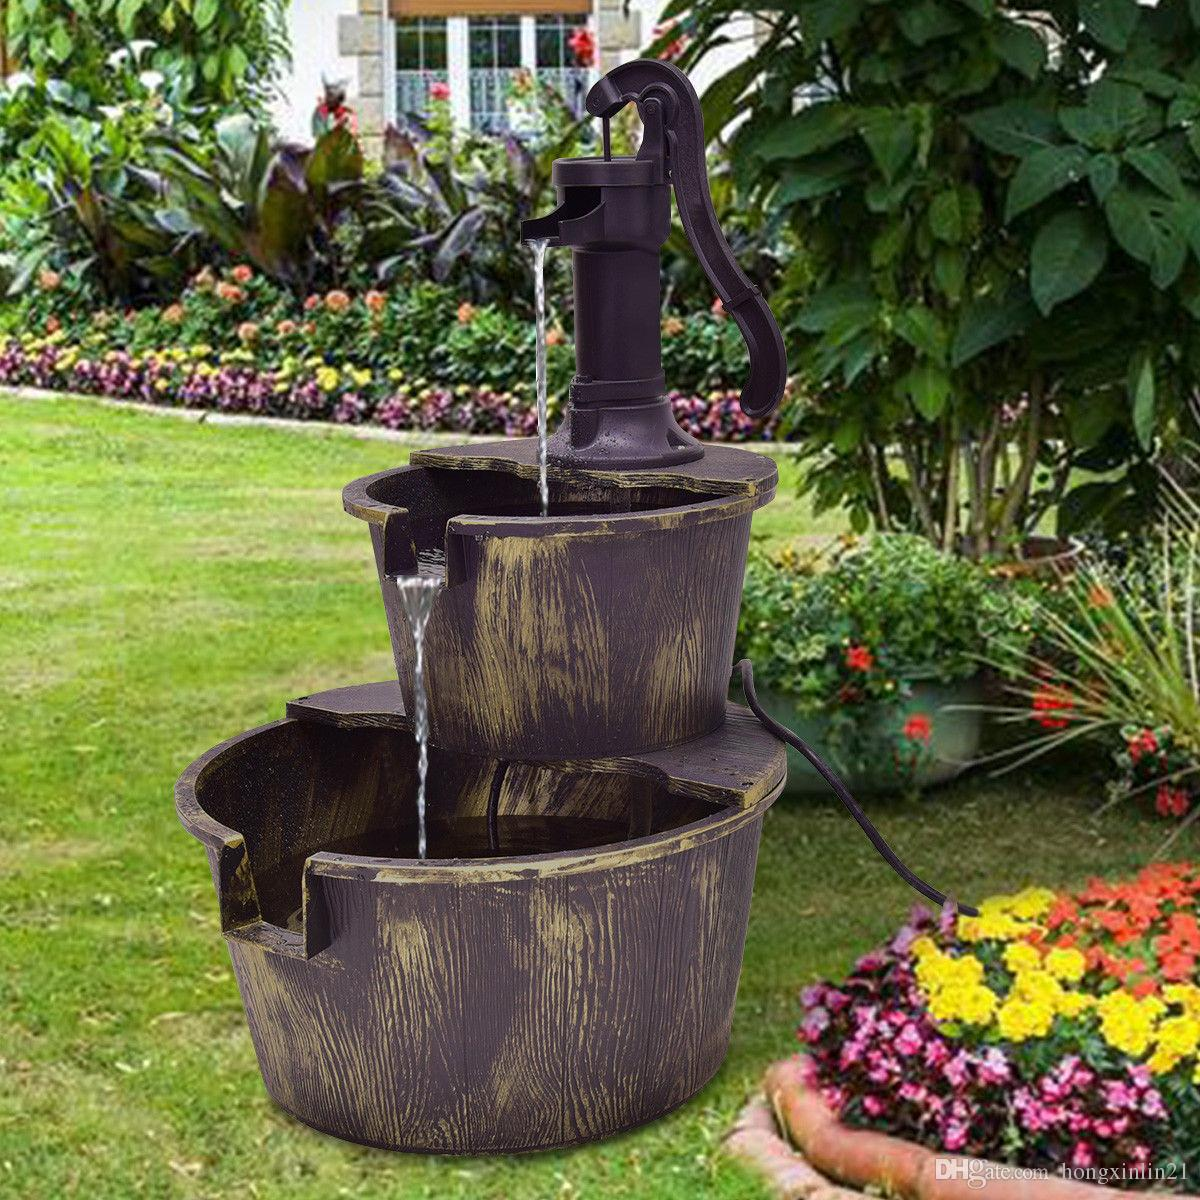 2019 3 Tier Barrel Waterfall Fountain Barrel Water